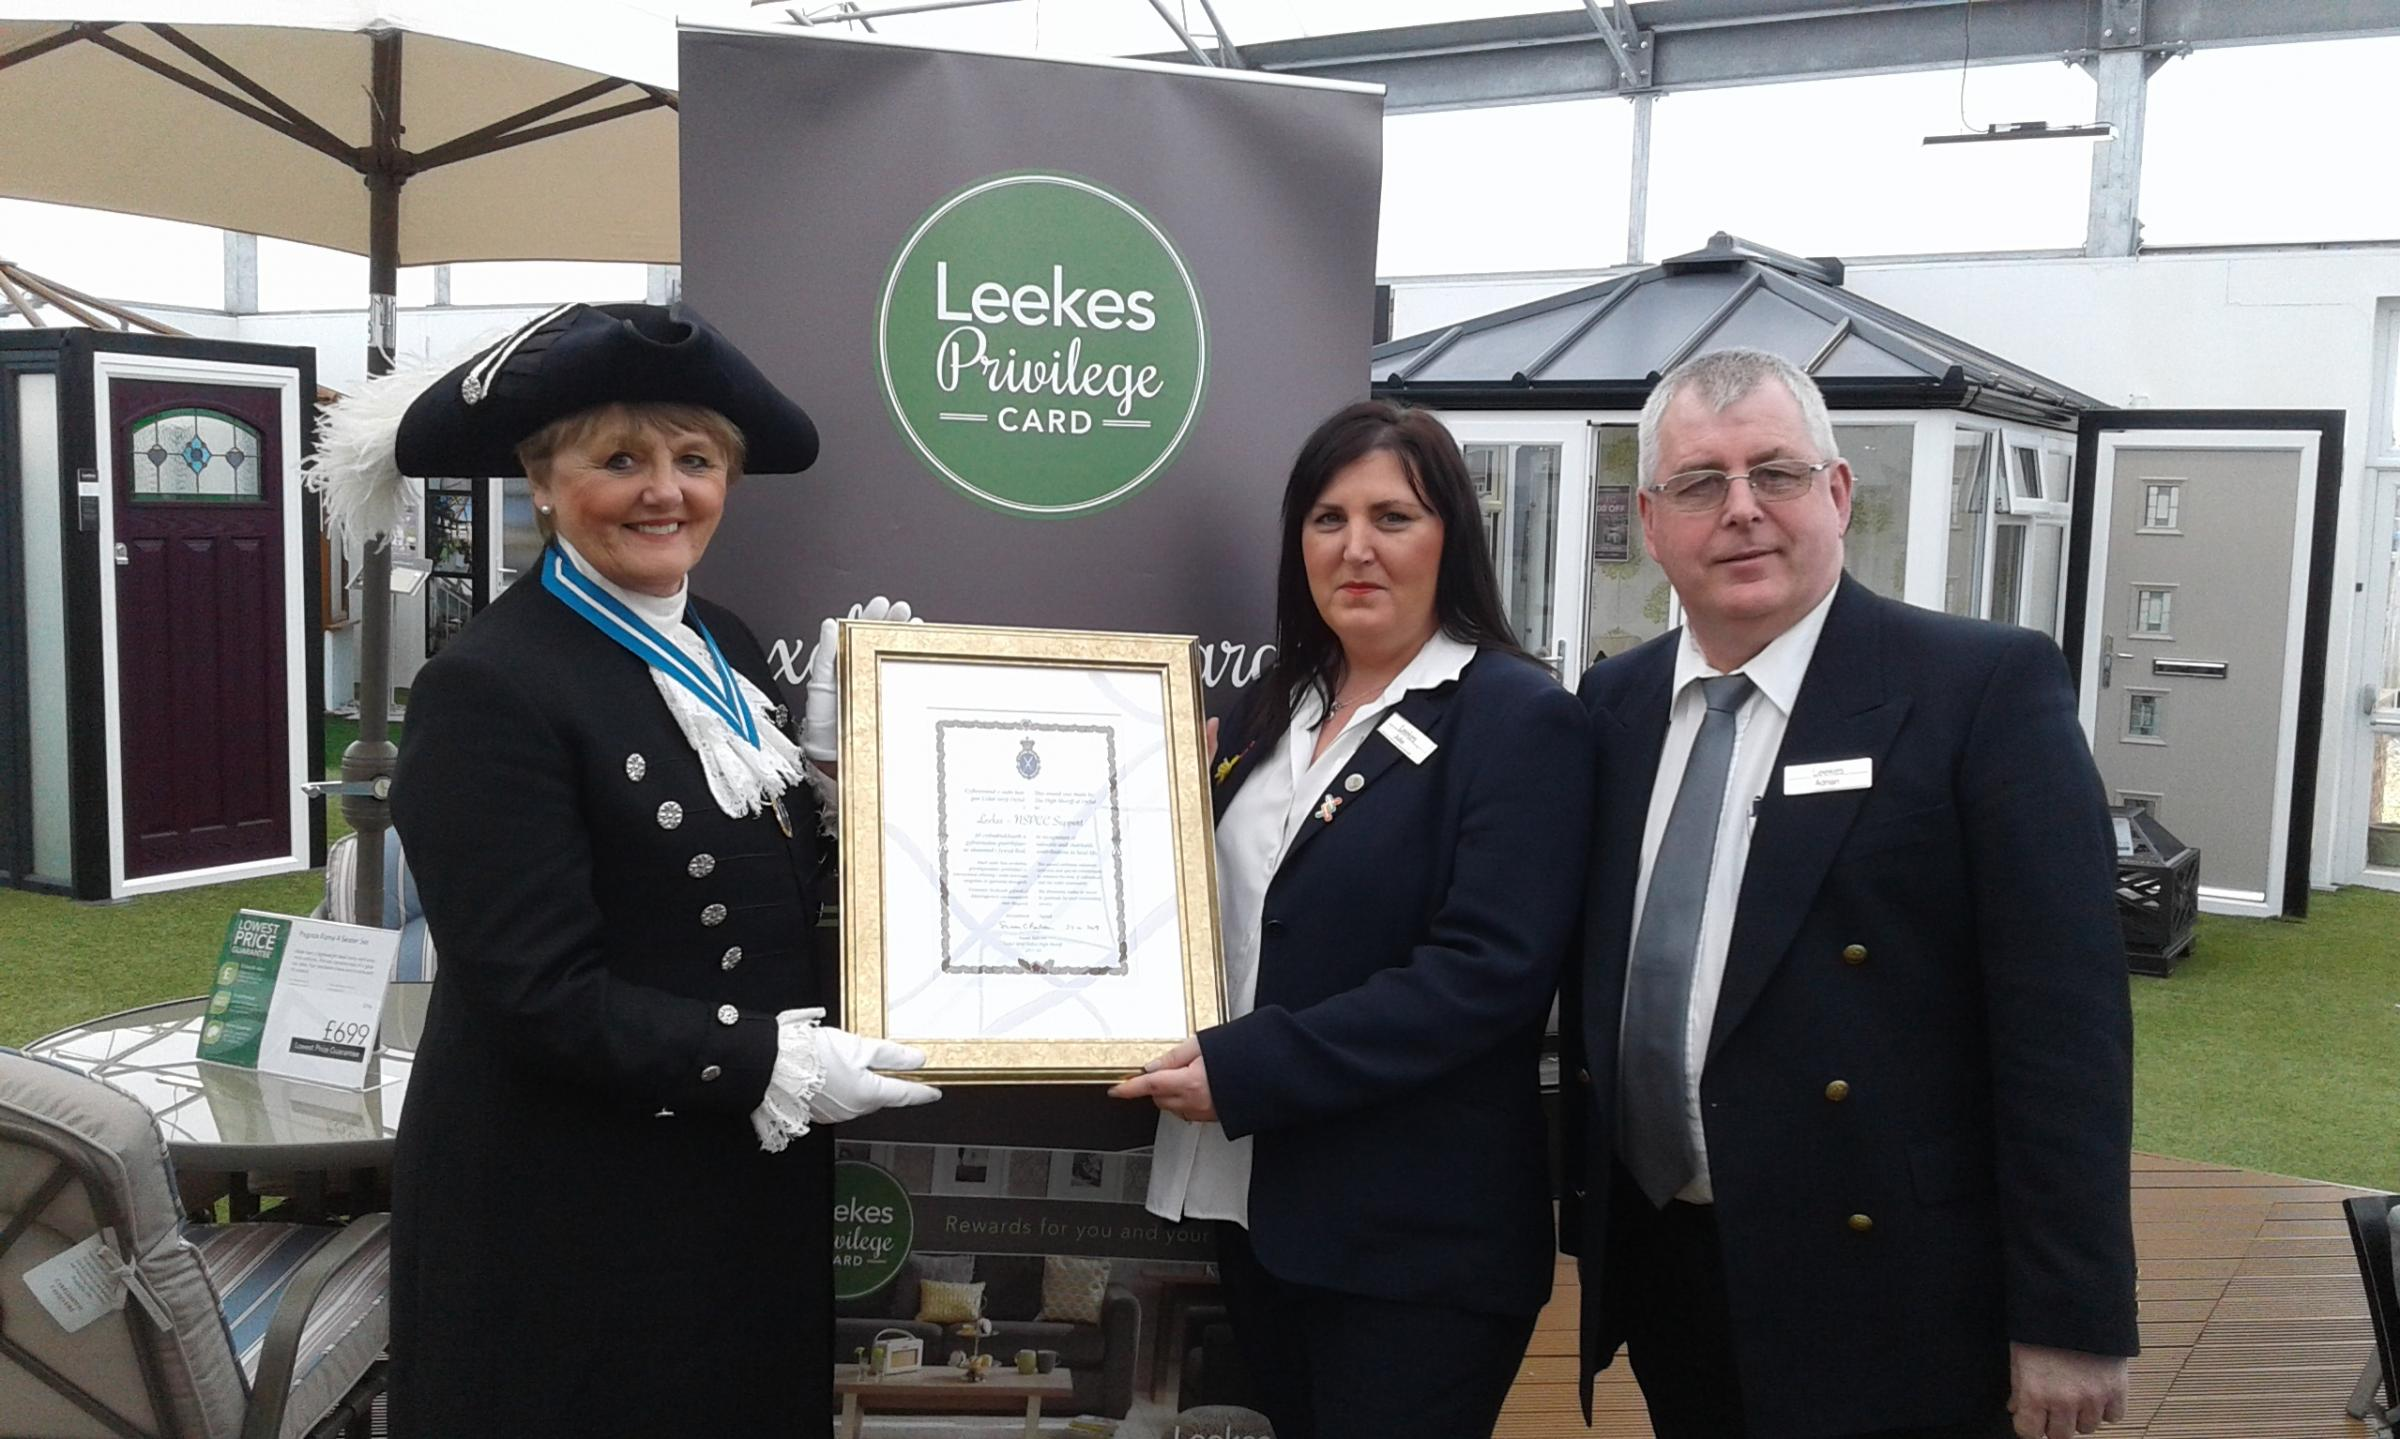 High Sheriff of Dyfed, Mrs Susan Balsom presents the award to Julie Roberts and Adrian Evans of Leekes